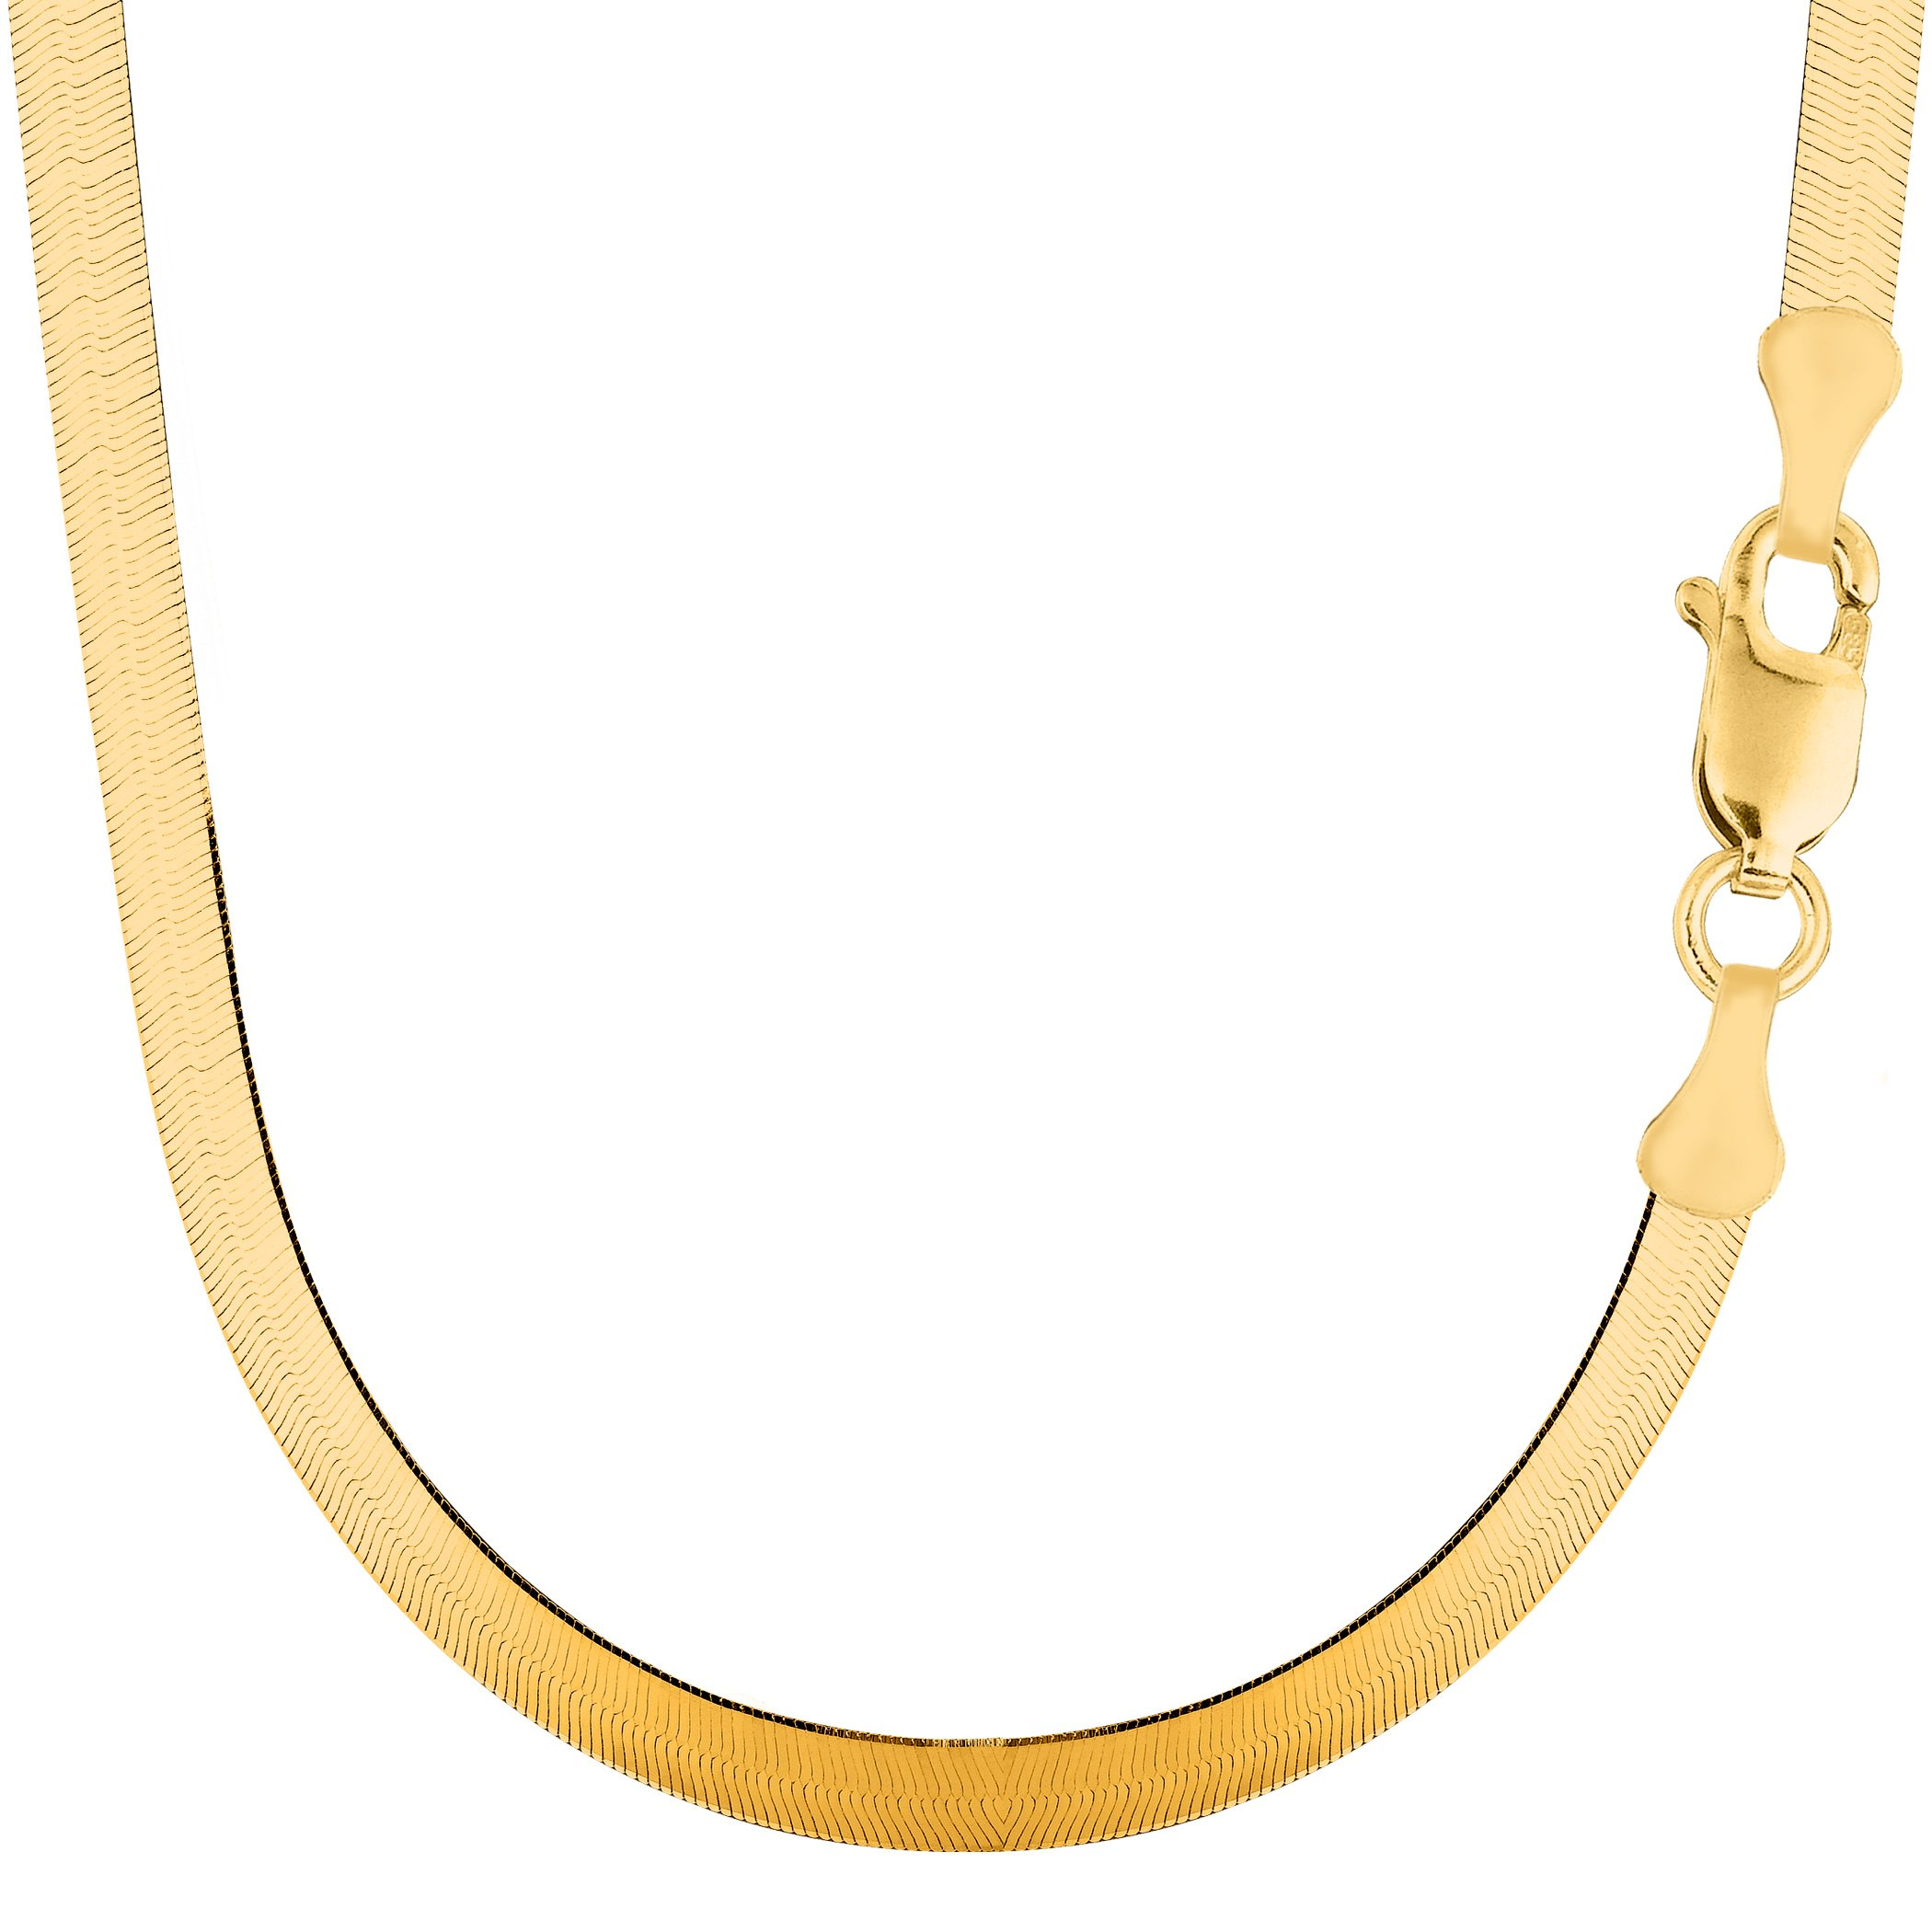 14k Yellow Gold Imperial Herringbone Chain Bracelet, 5.0mm, 7'' by JewelryAffairs